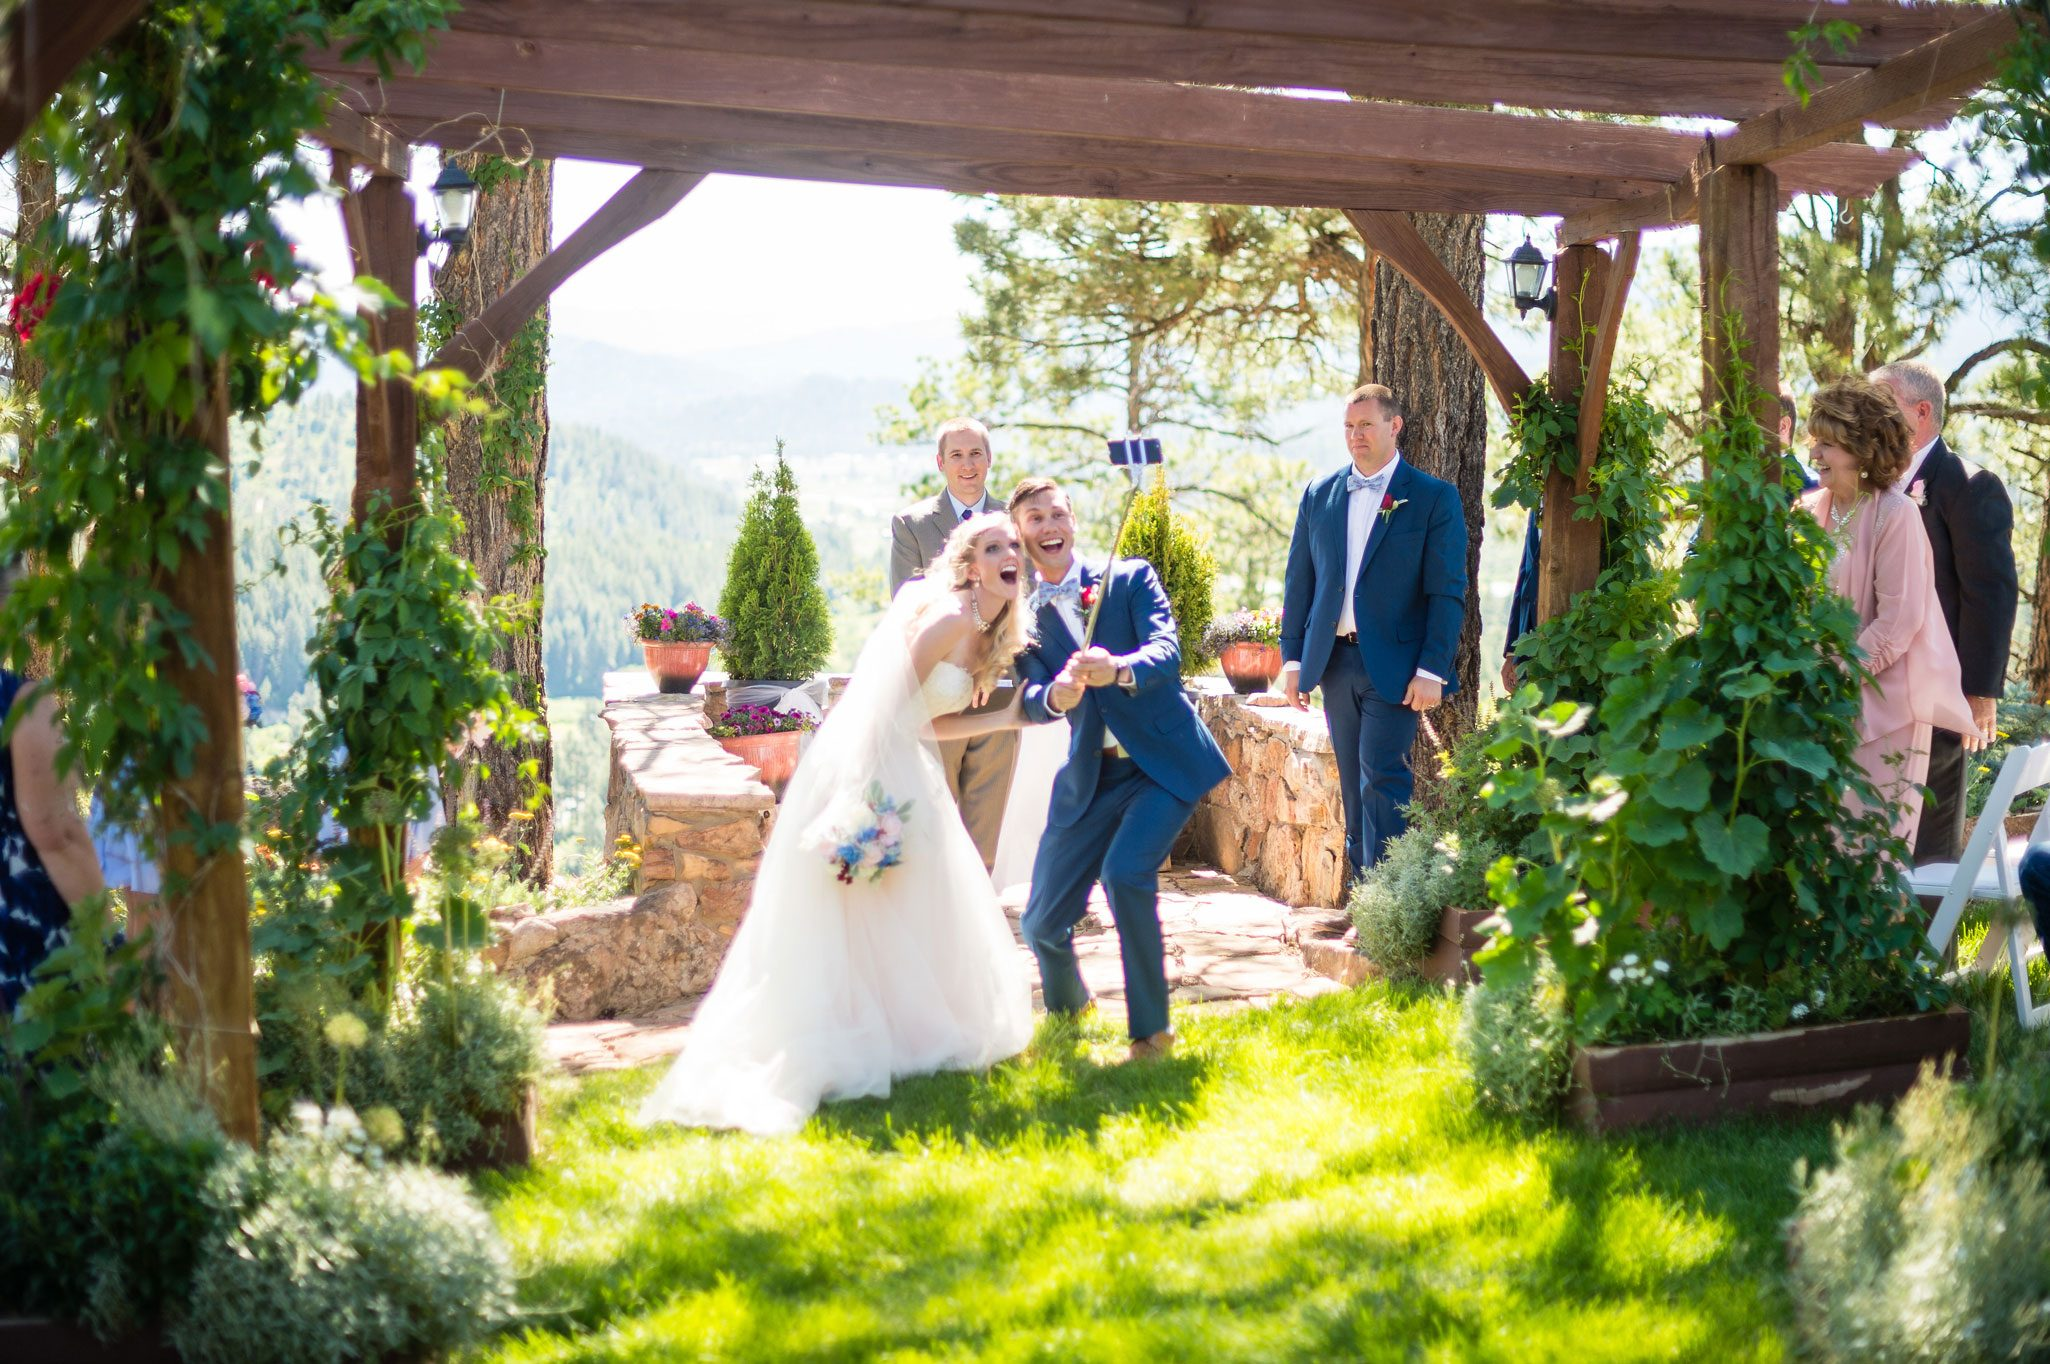 Selfie Fun | Destination wedding with a vintage bike theme in the mountains of Pagosa Spring, Colorado